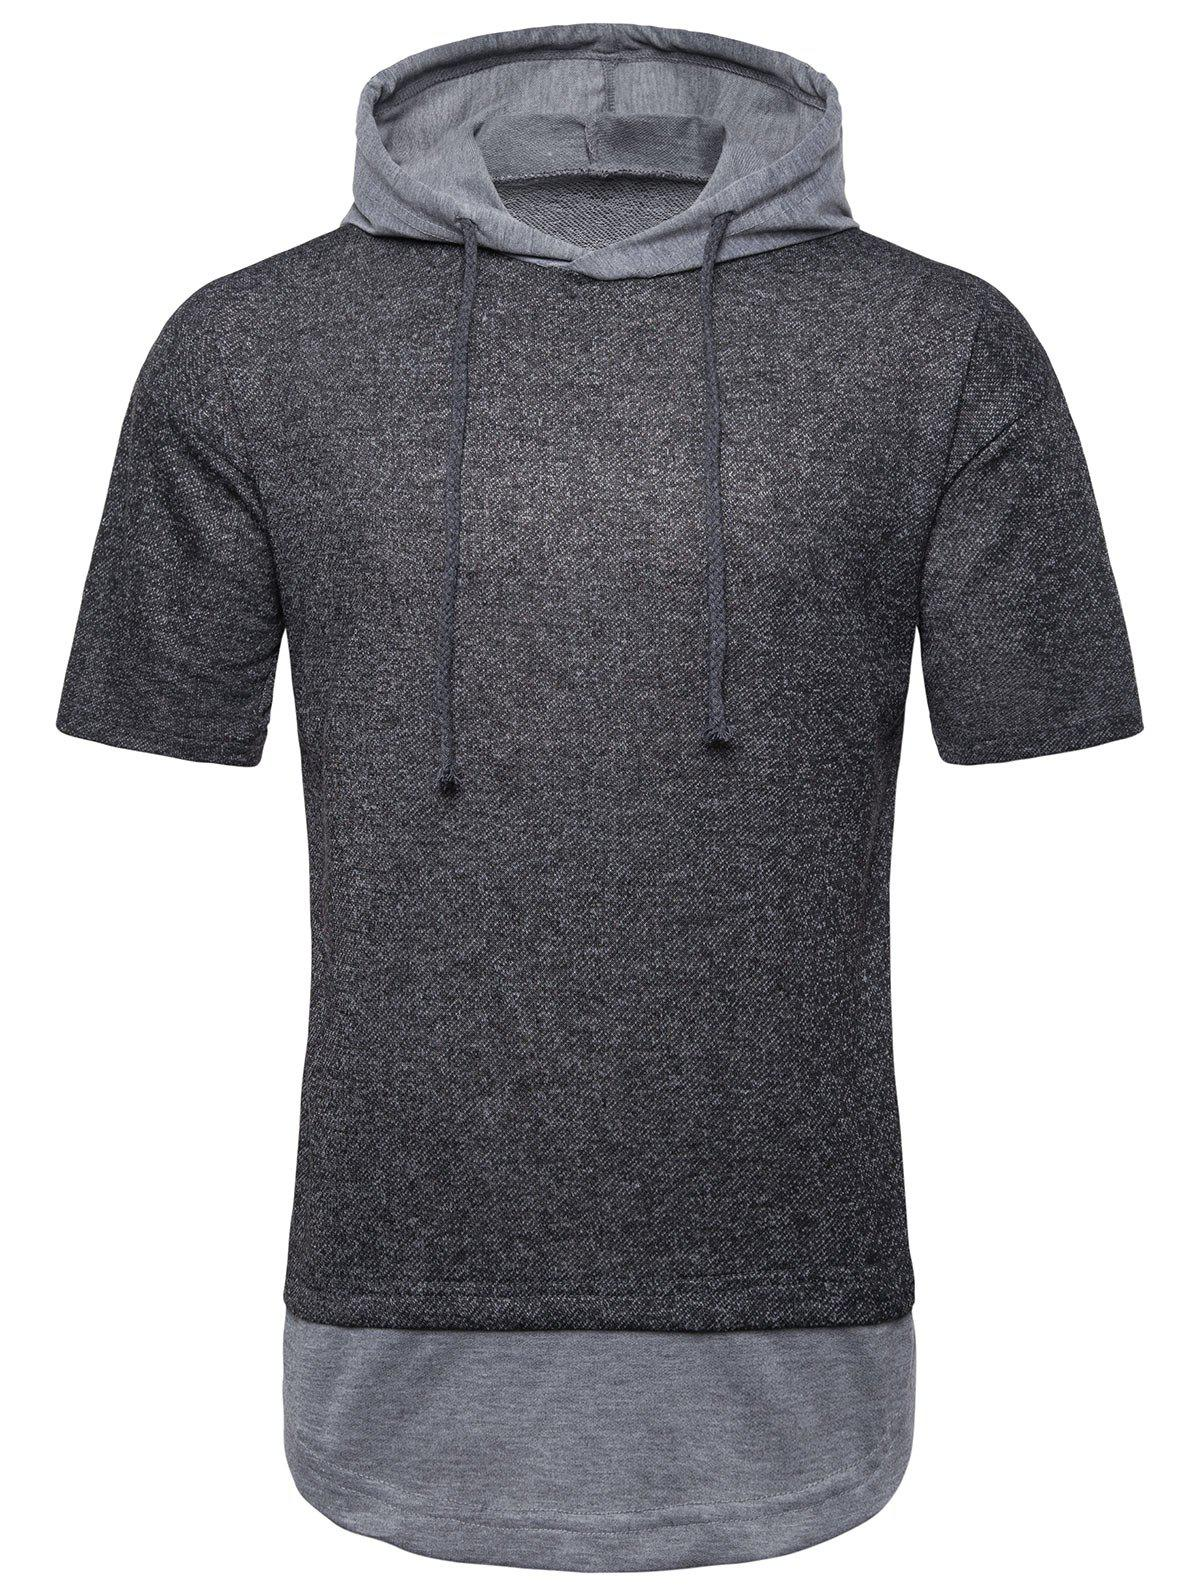 Affordable Color Spliced Drawstring Hooded T-shirt